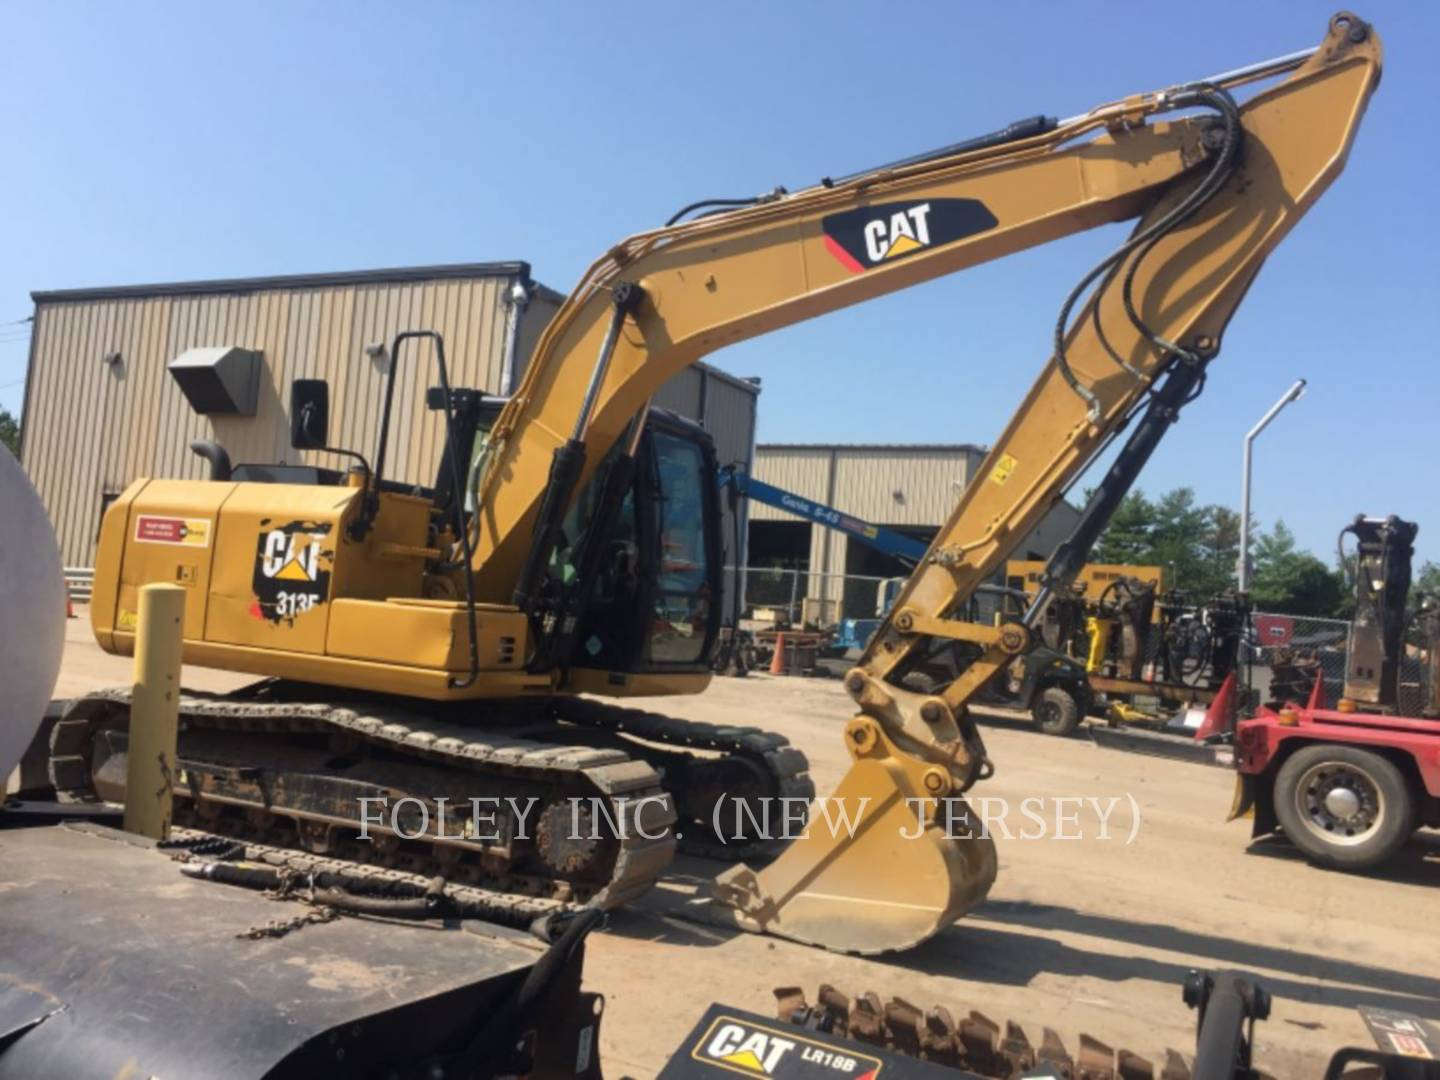 Used Track Excavators for Sale in NJ, PA, DE and Staten